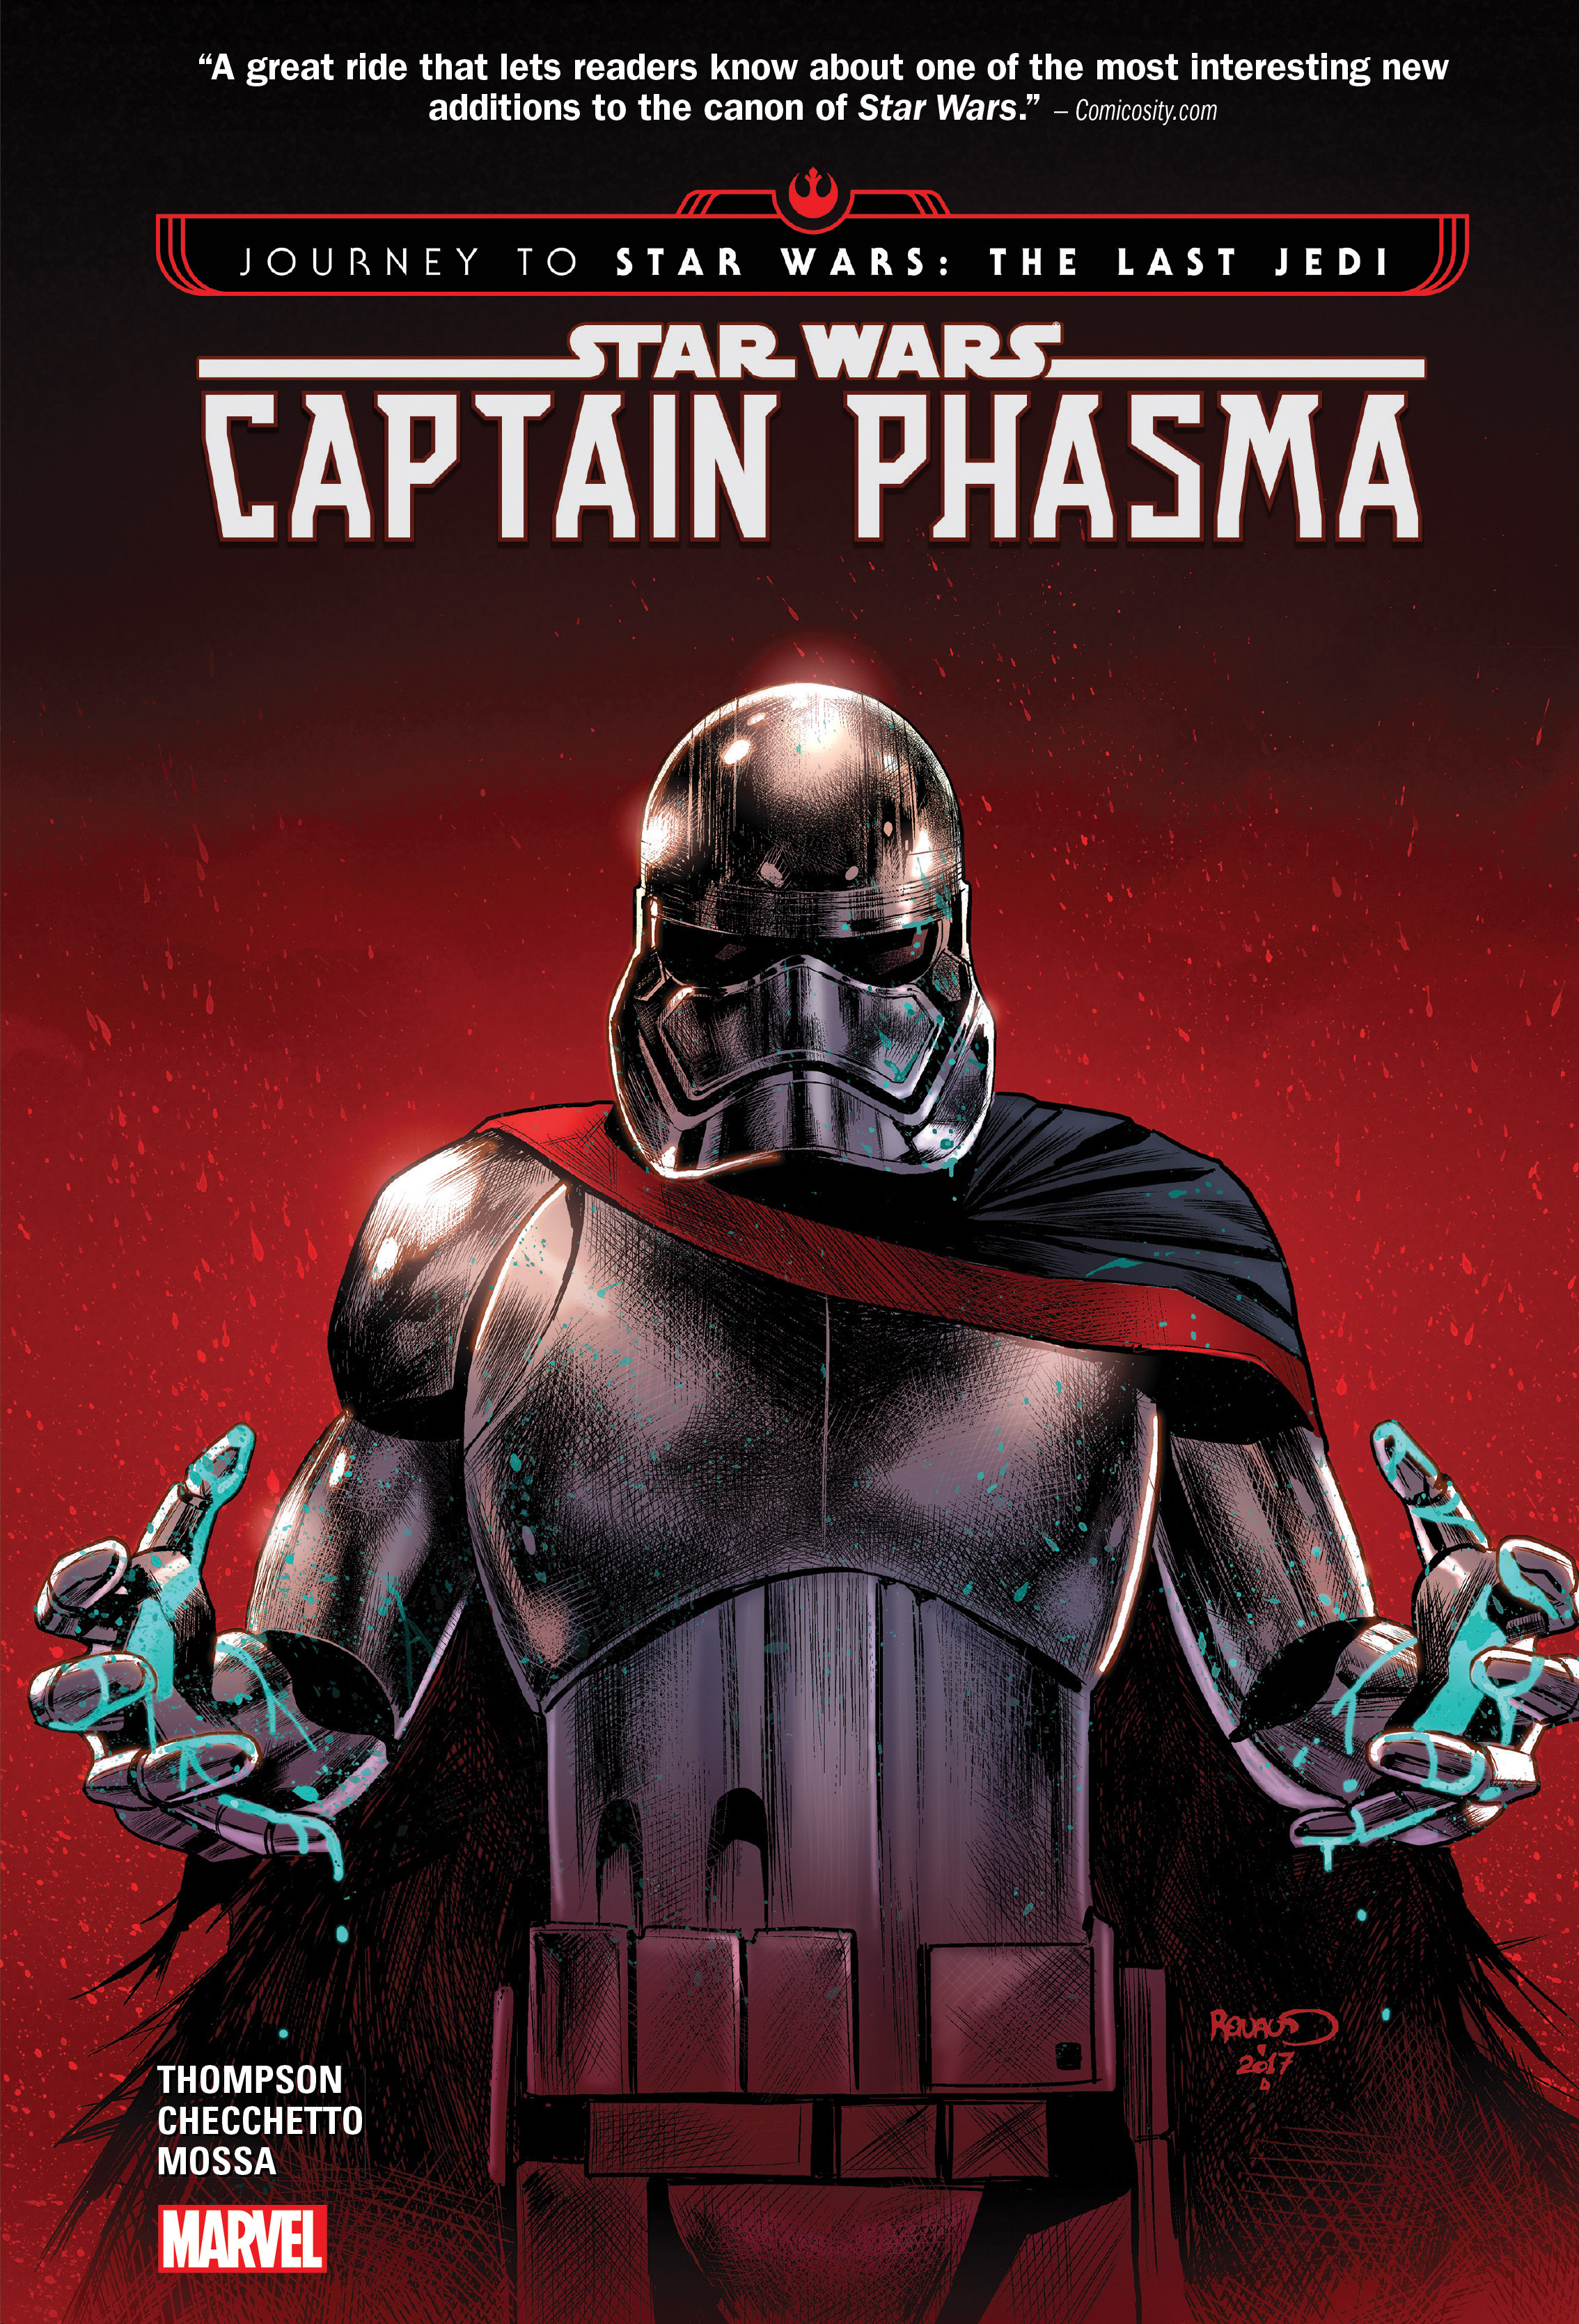 Star Wars: Journey To Star Wars: The Last Jedi - Captain Phasma (Hardcover)